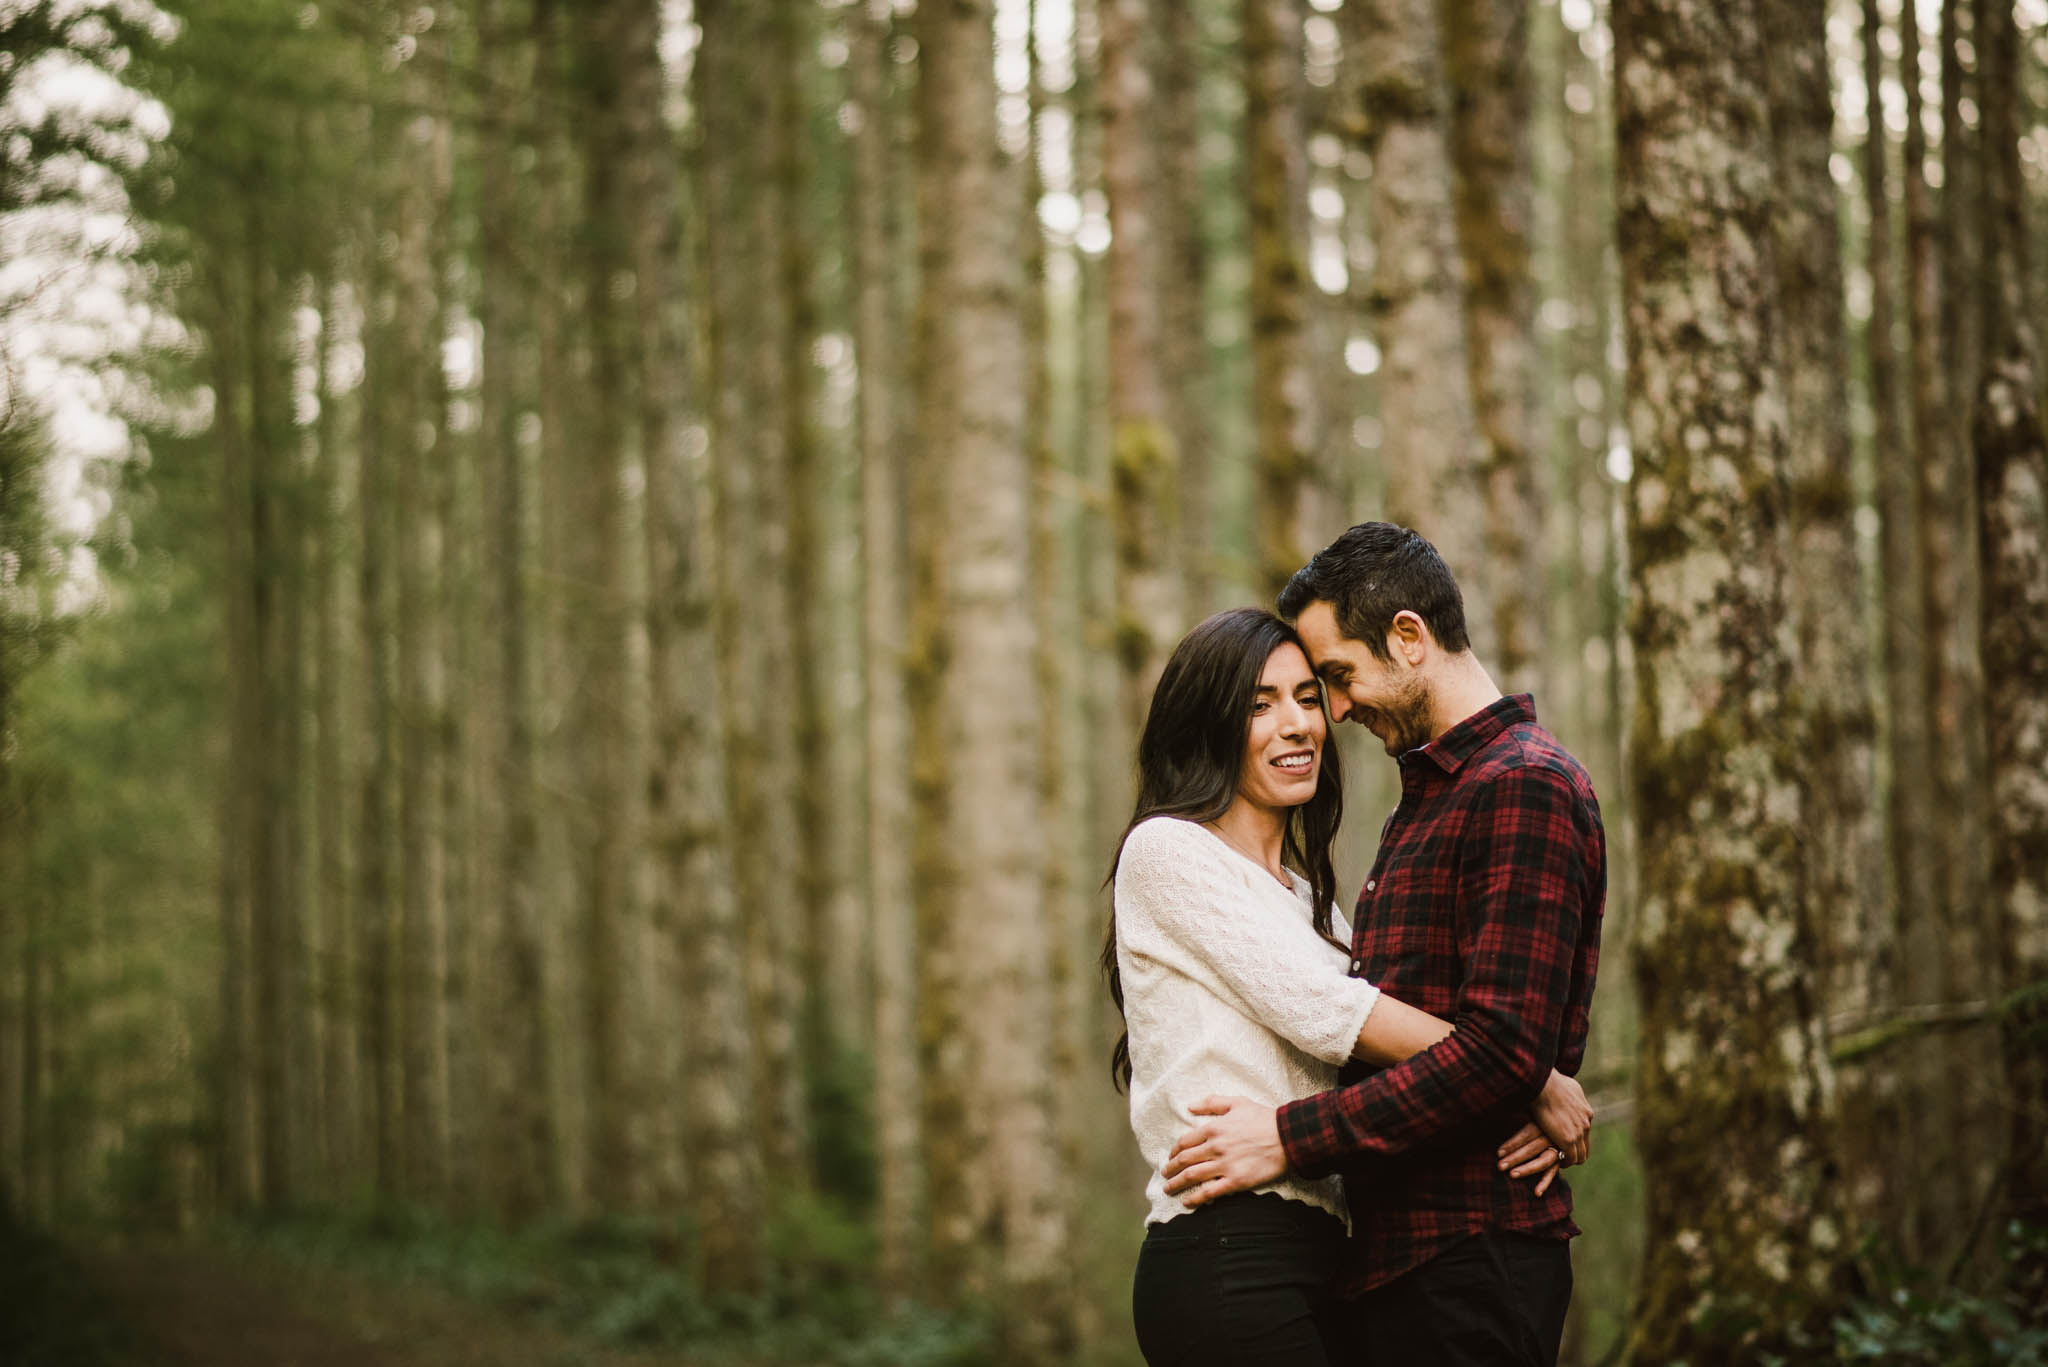 ©Isaiah-&-Taylor-Photography---Rattlesnake-Ledge-Trail-Engagement,-Seattle-Washington-018.jpg